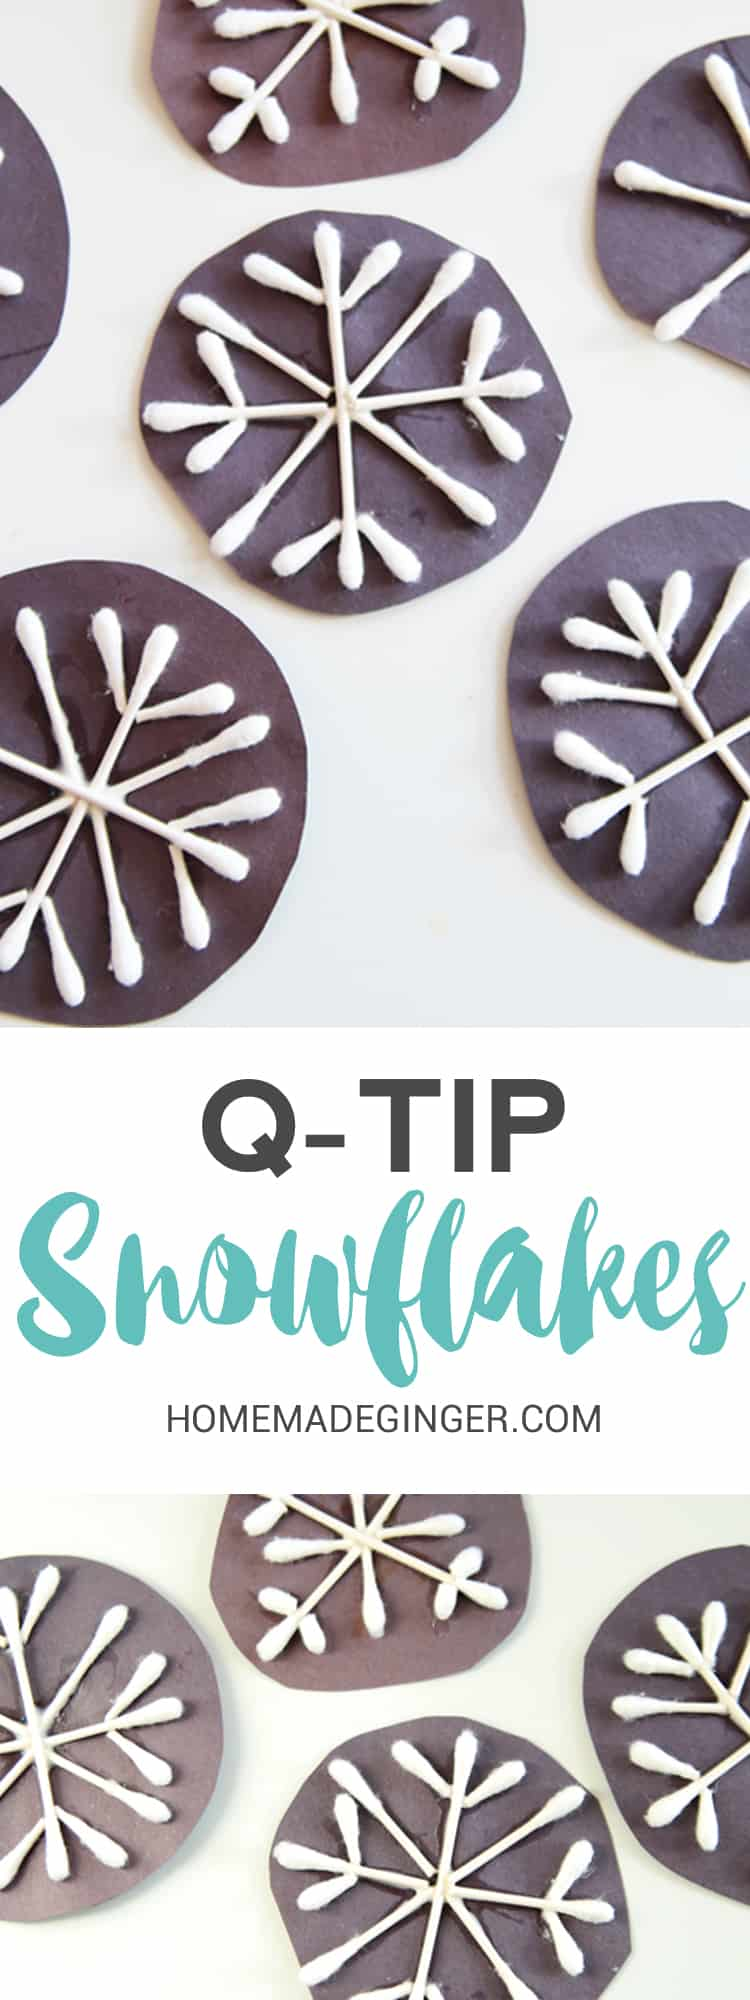 These q-tip snowflakes are ADORABLE and the perfect snowflake craft for kids of all ages!